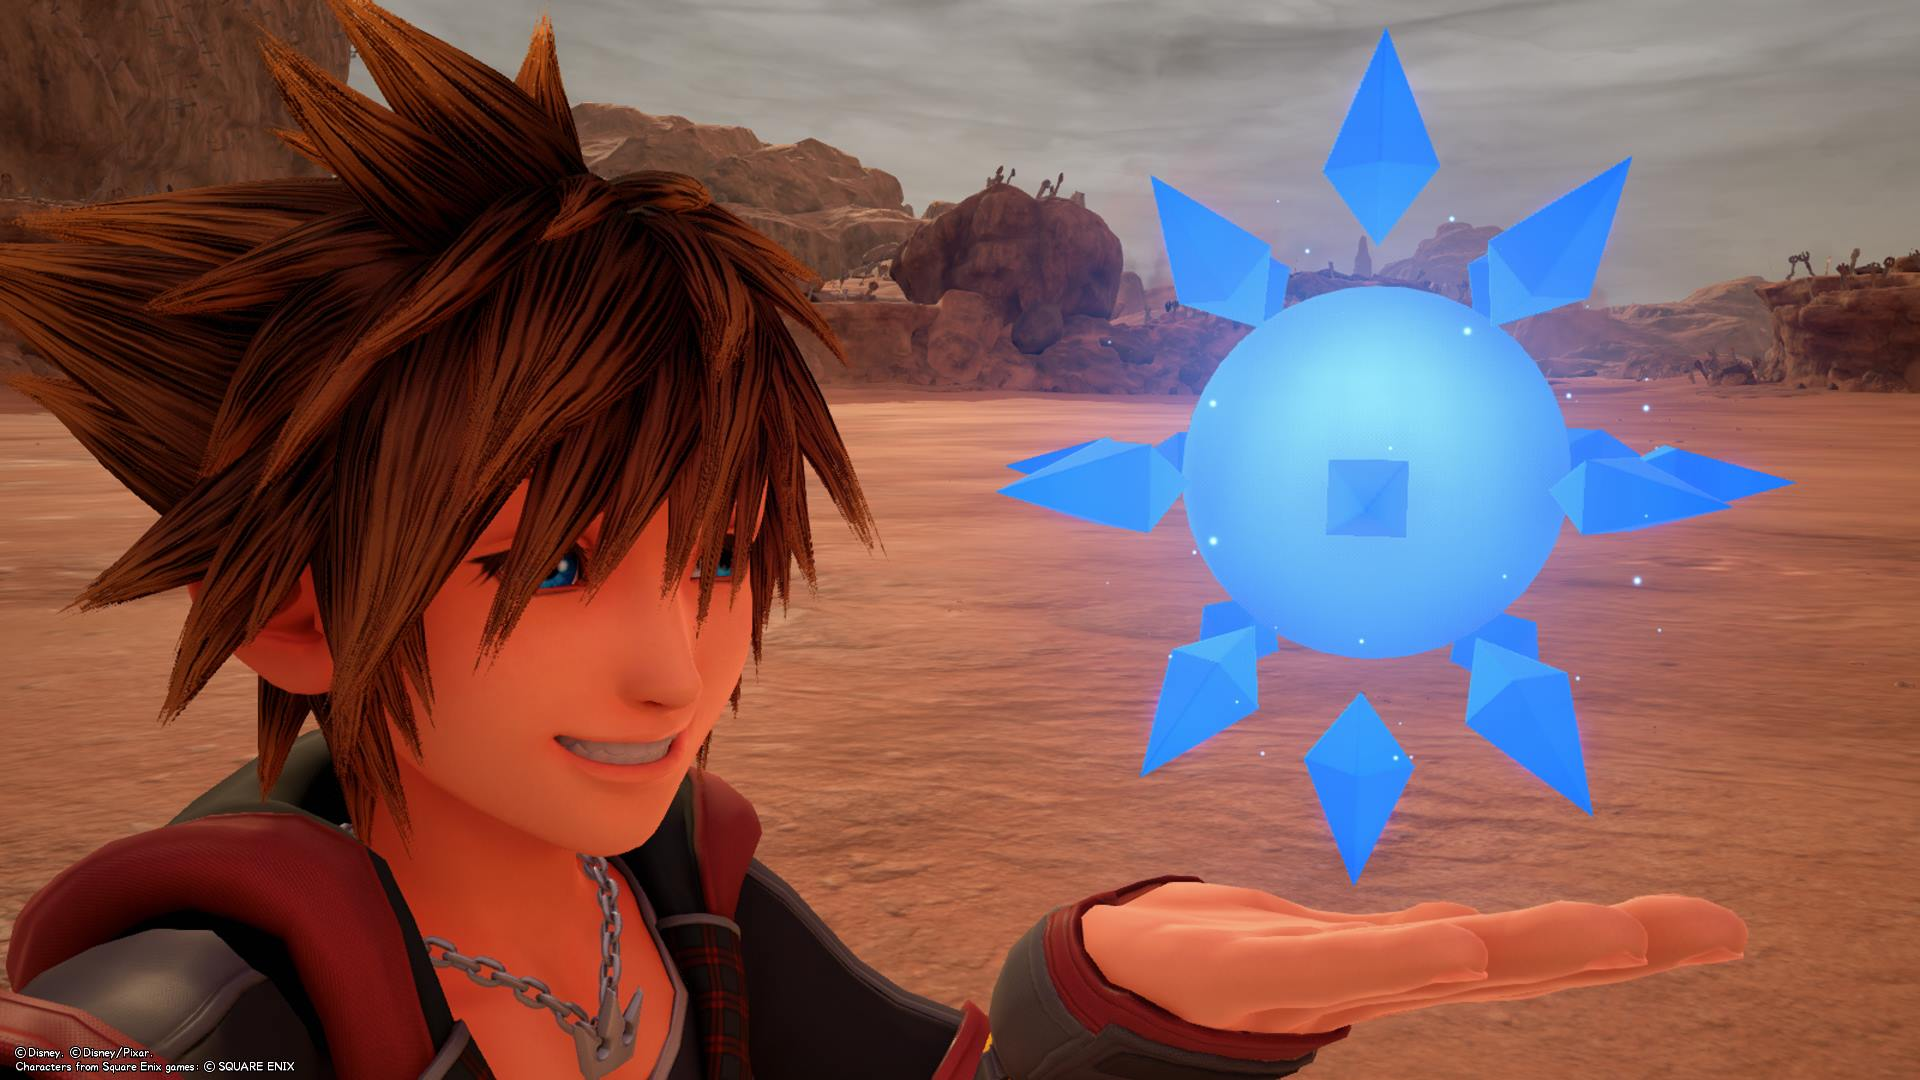 Below, we'll walk you through where you can find all fourteen Battlegates in Kingdom Hearts 3.